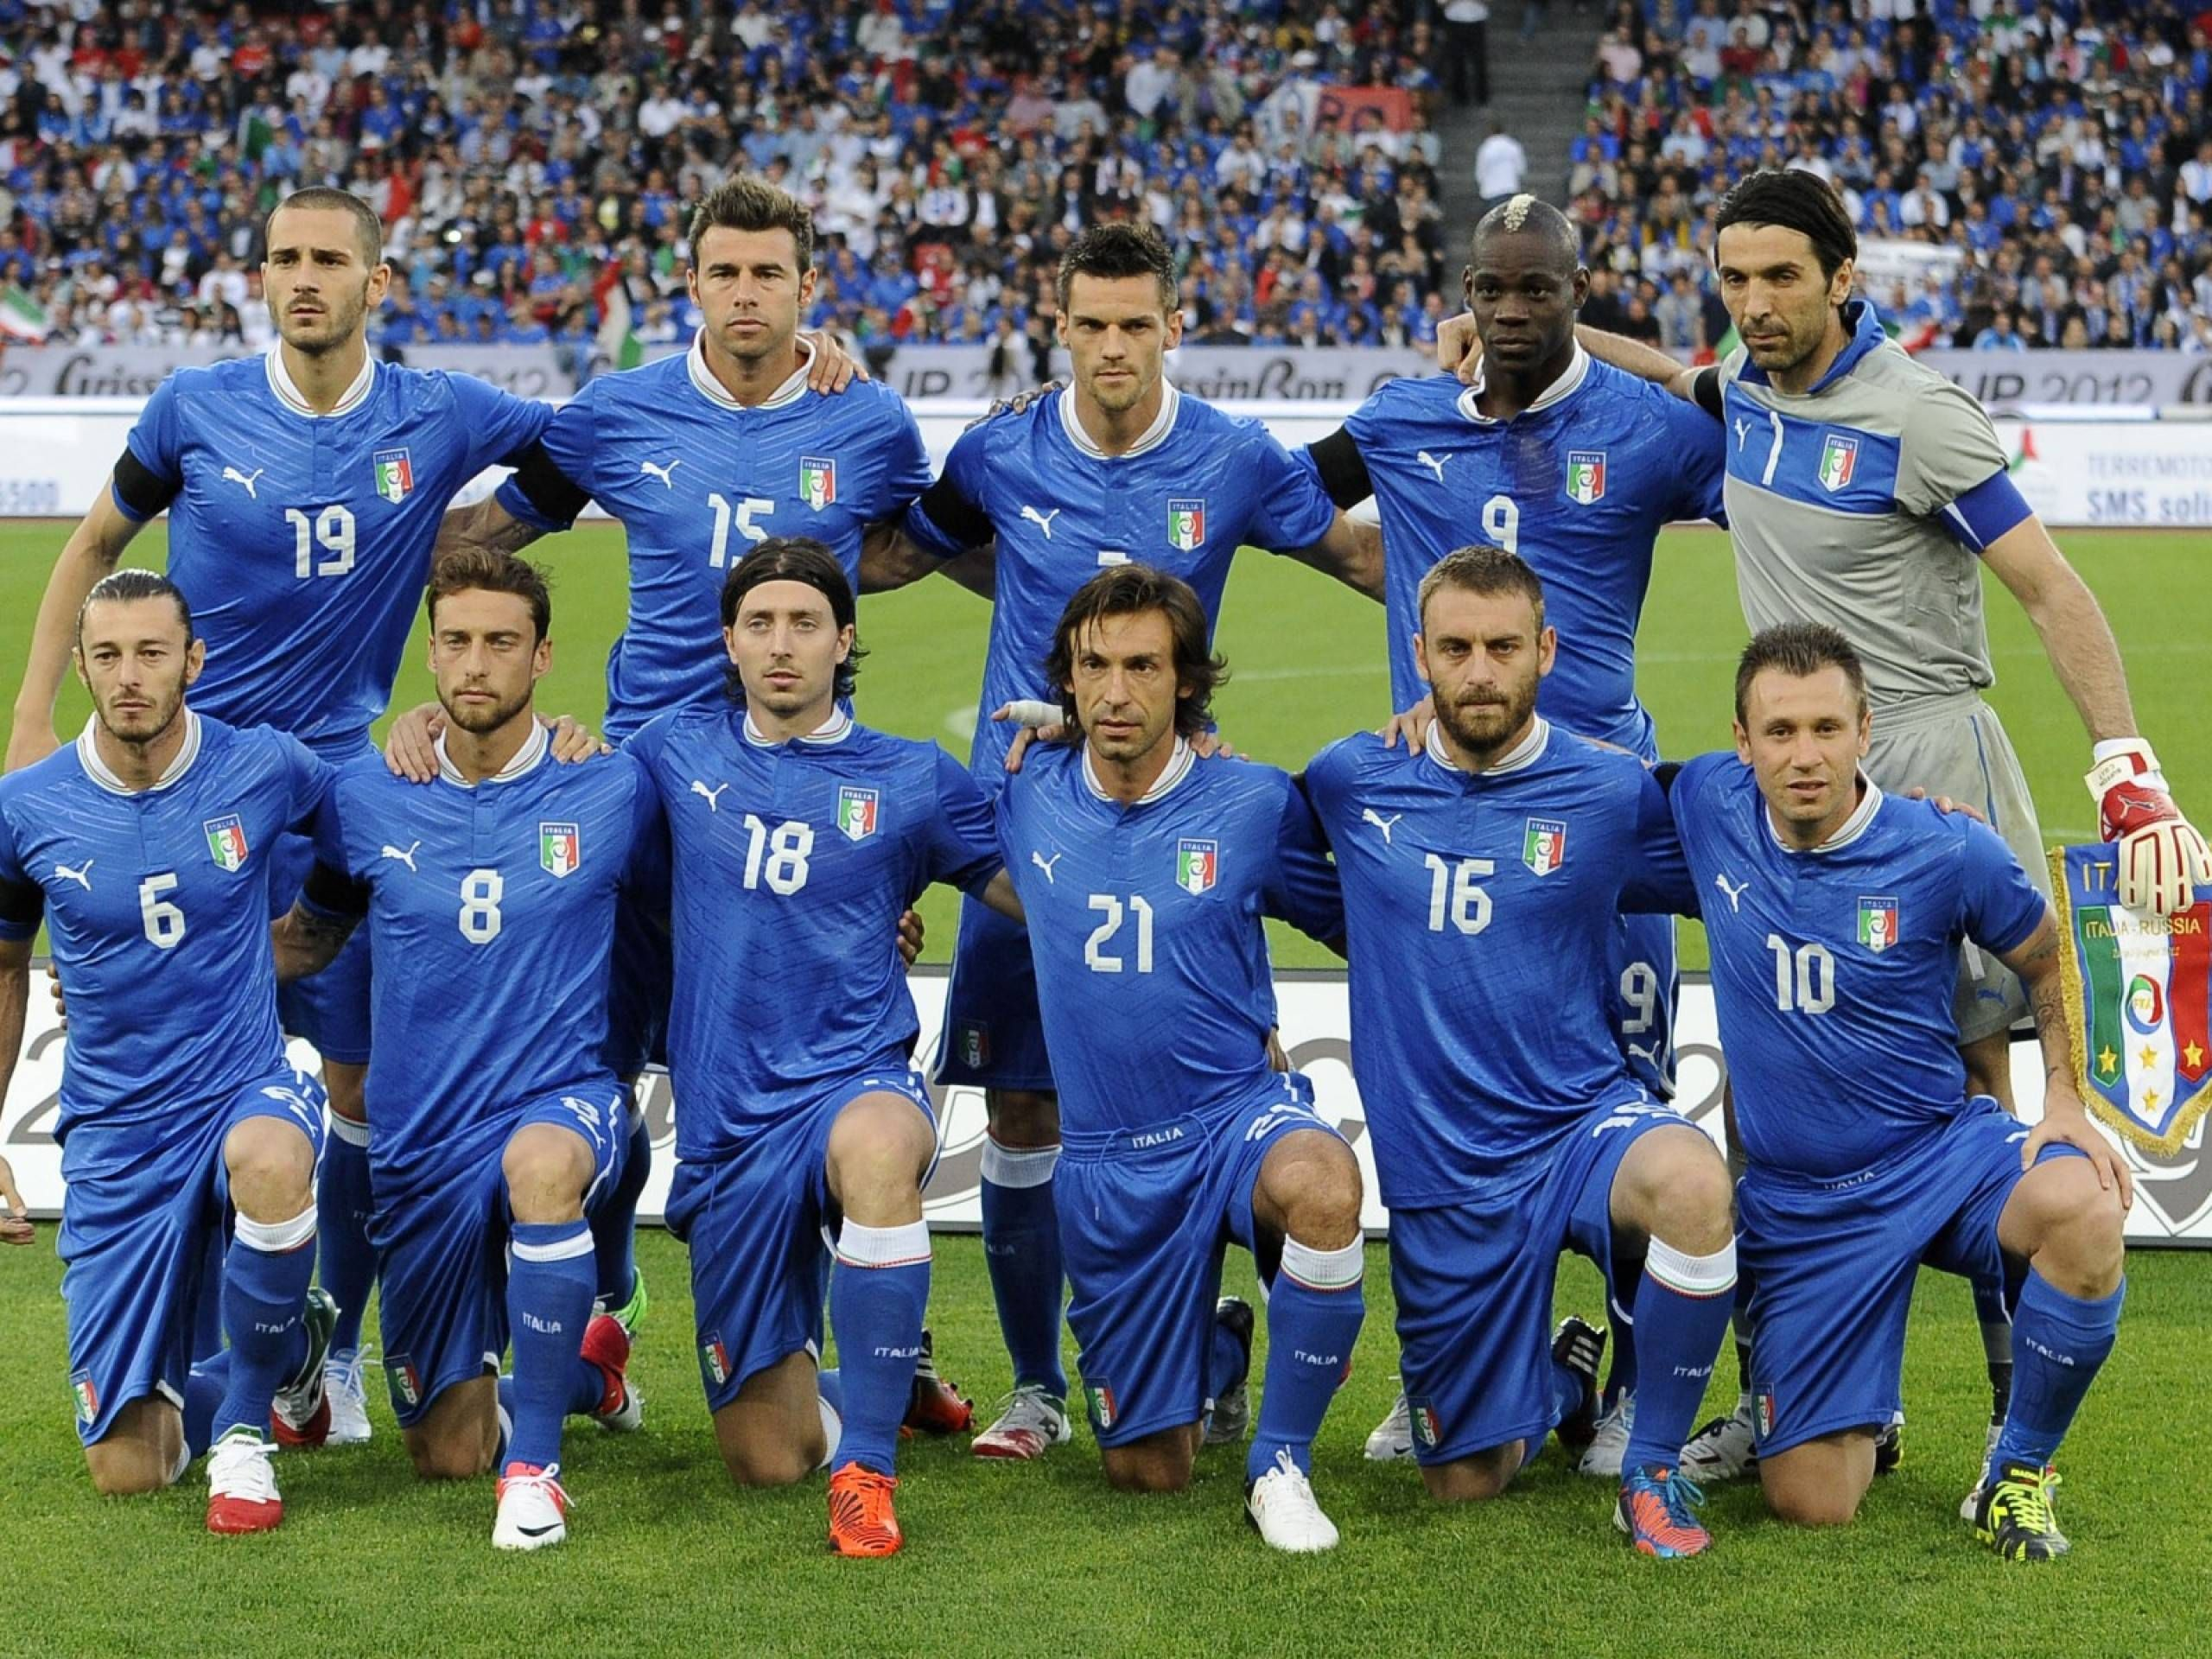 Italy Soccer Team Football Wallpaper Italy National Football Team National Football Teams Football Team Pictures